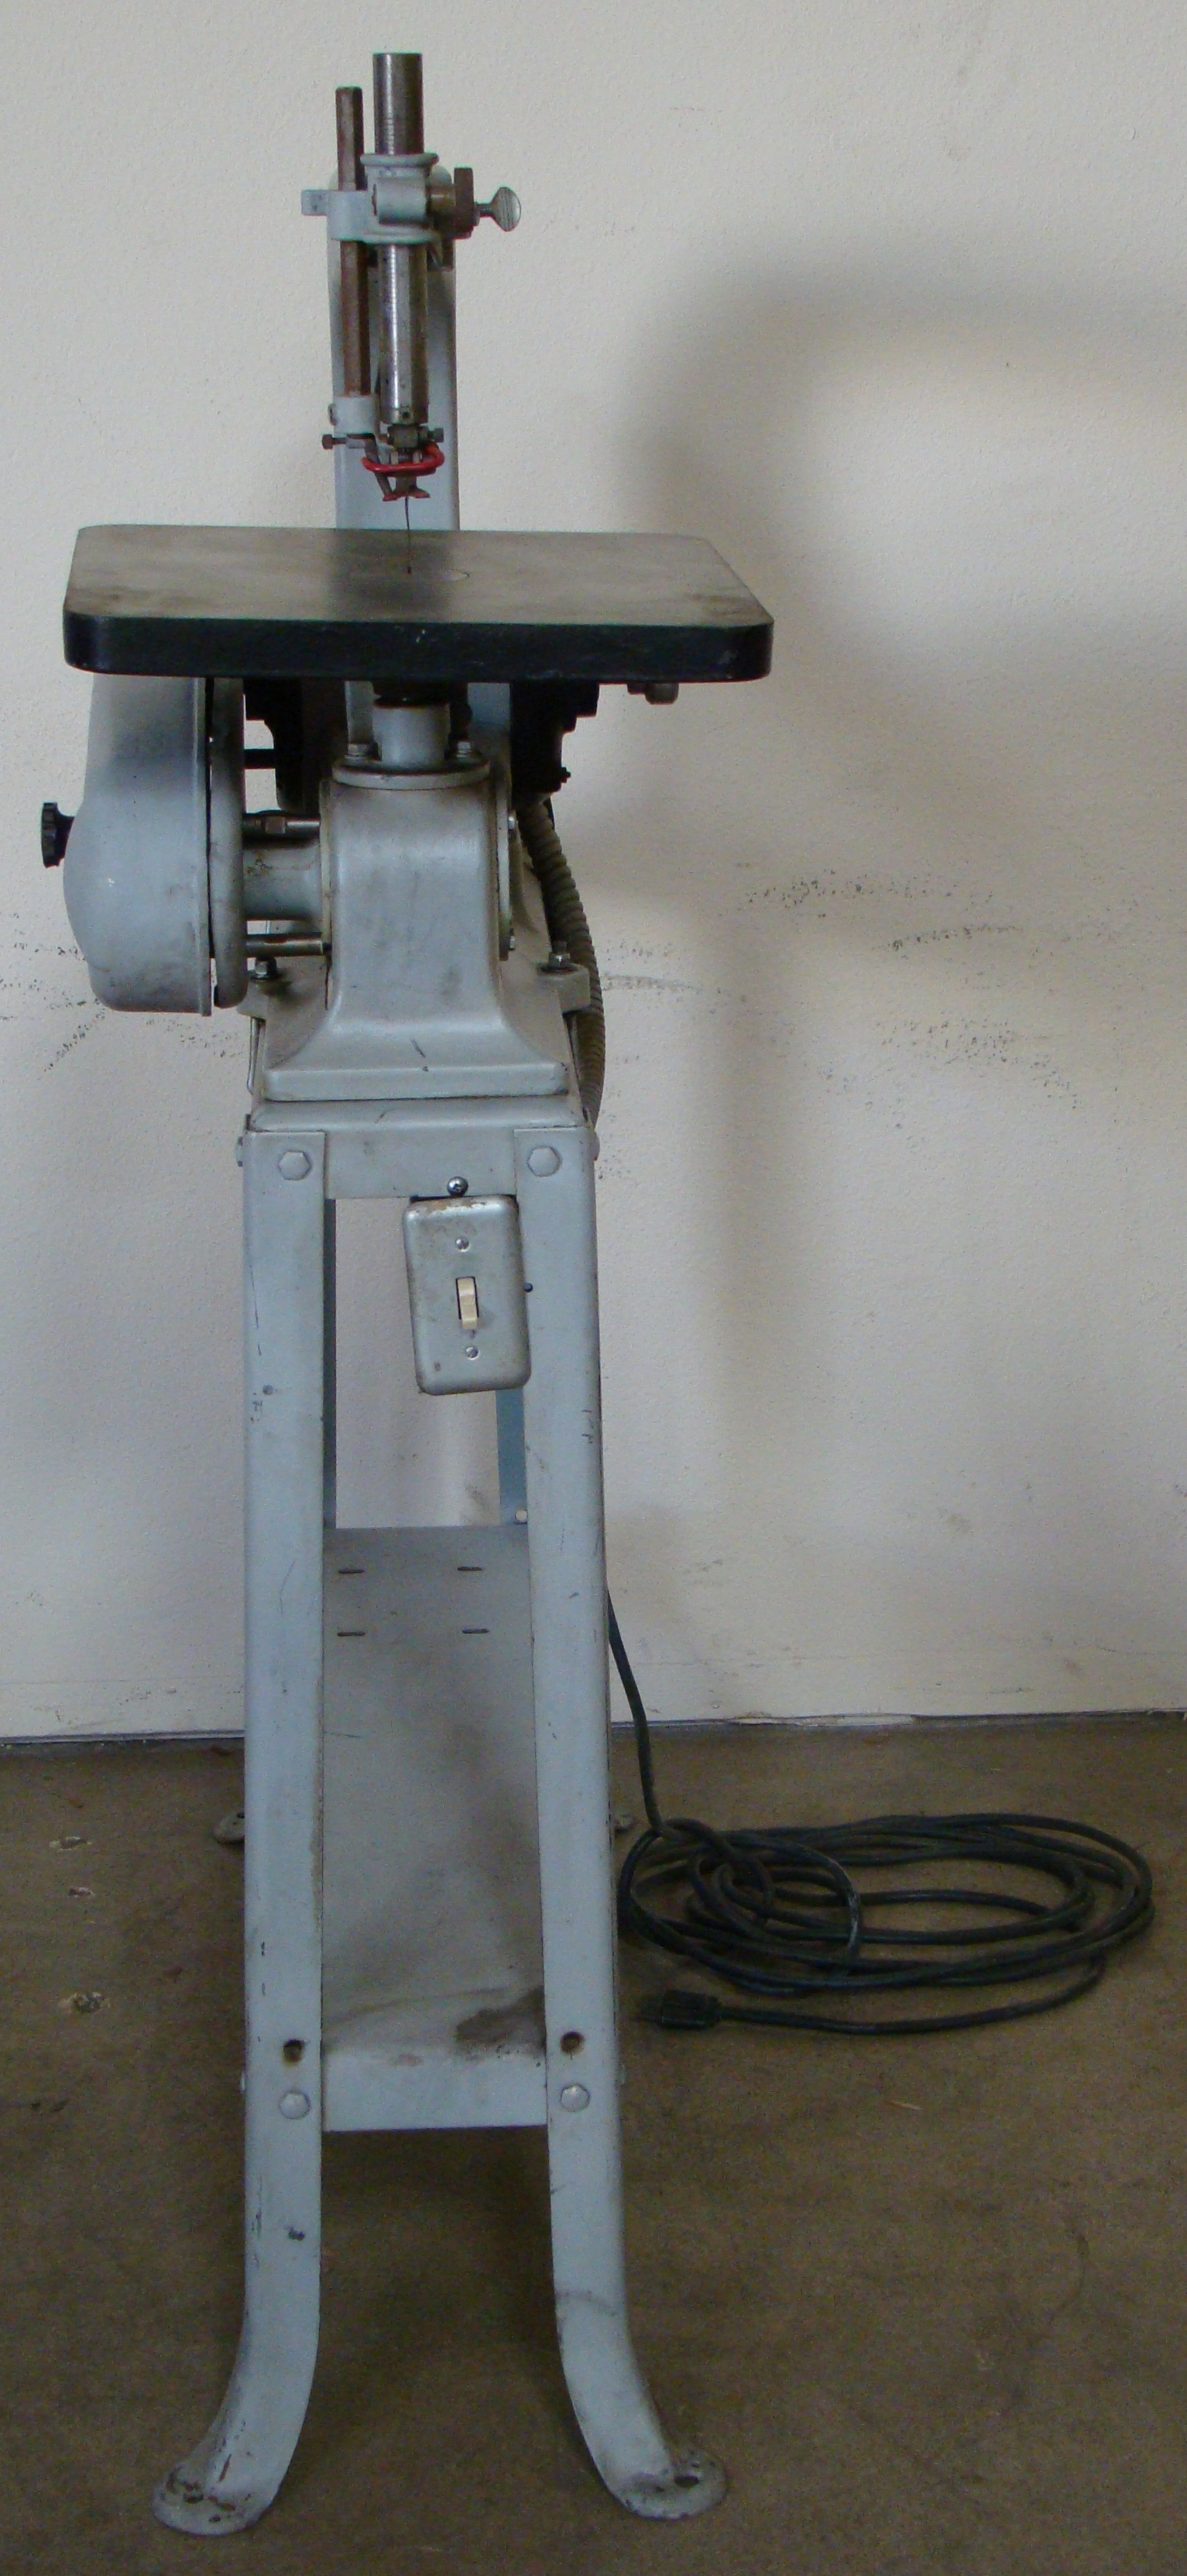 "Delta Rockwell 24"" Scroll Saw with Stand Model 1/8HP 115/230 Volt 1PH - Image 4 of 5"